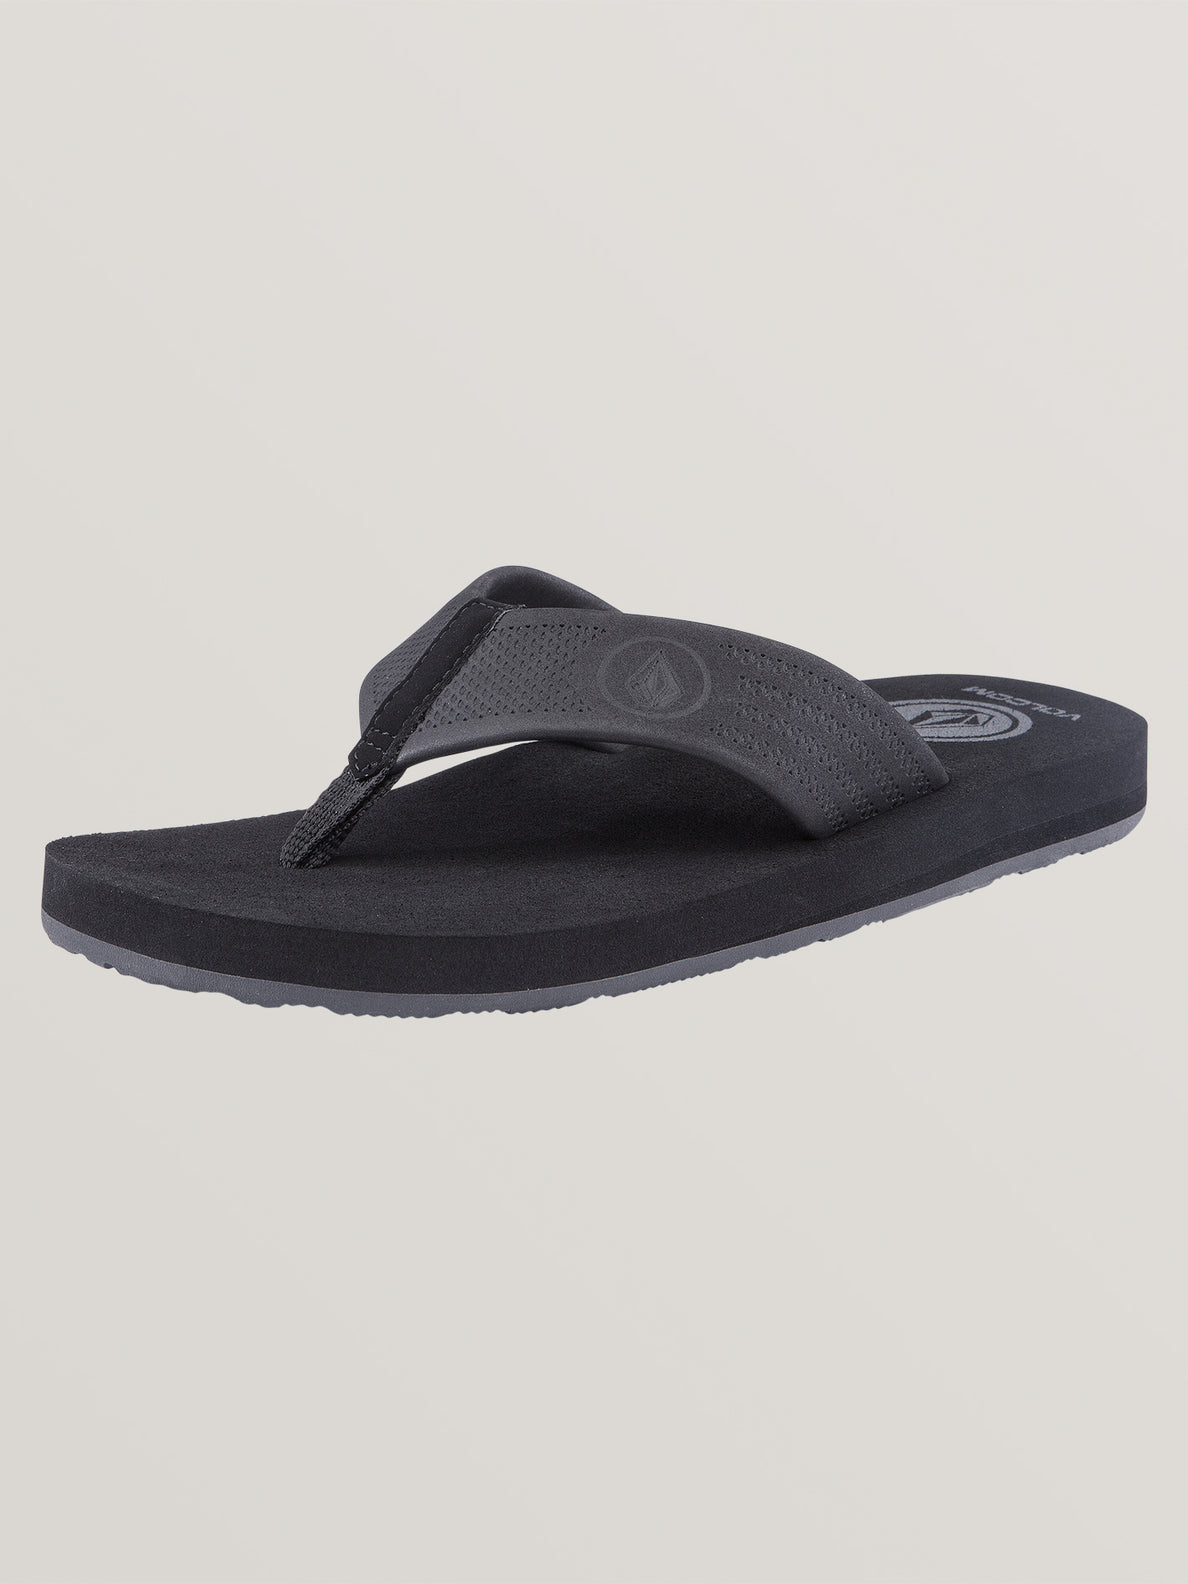 Big Boys Daycation Sandals In Black Destructo, Back View